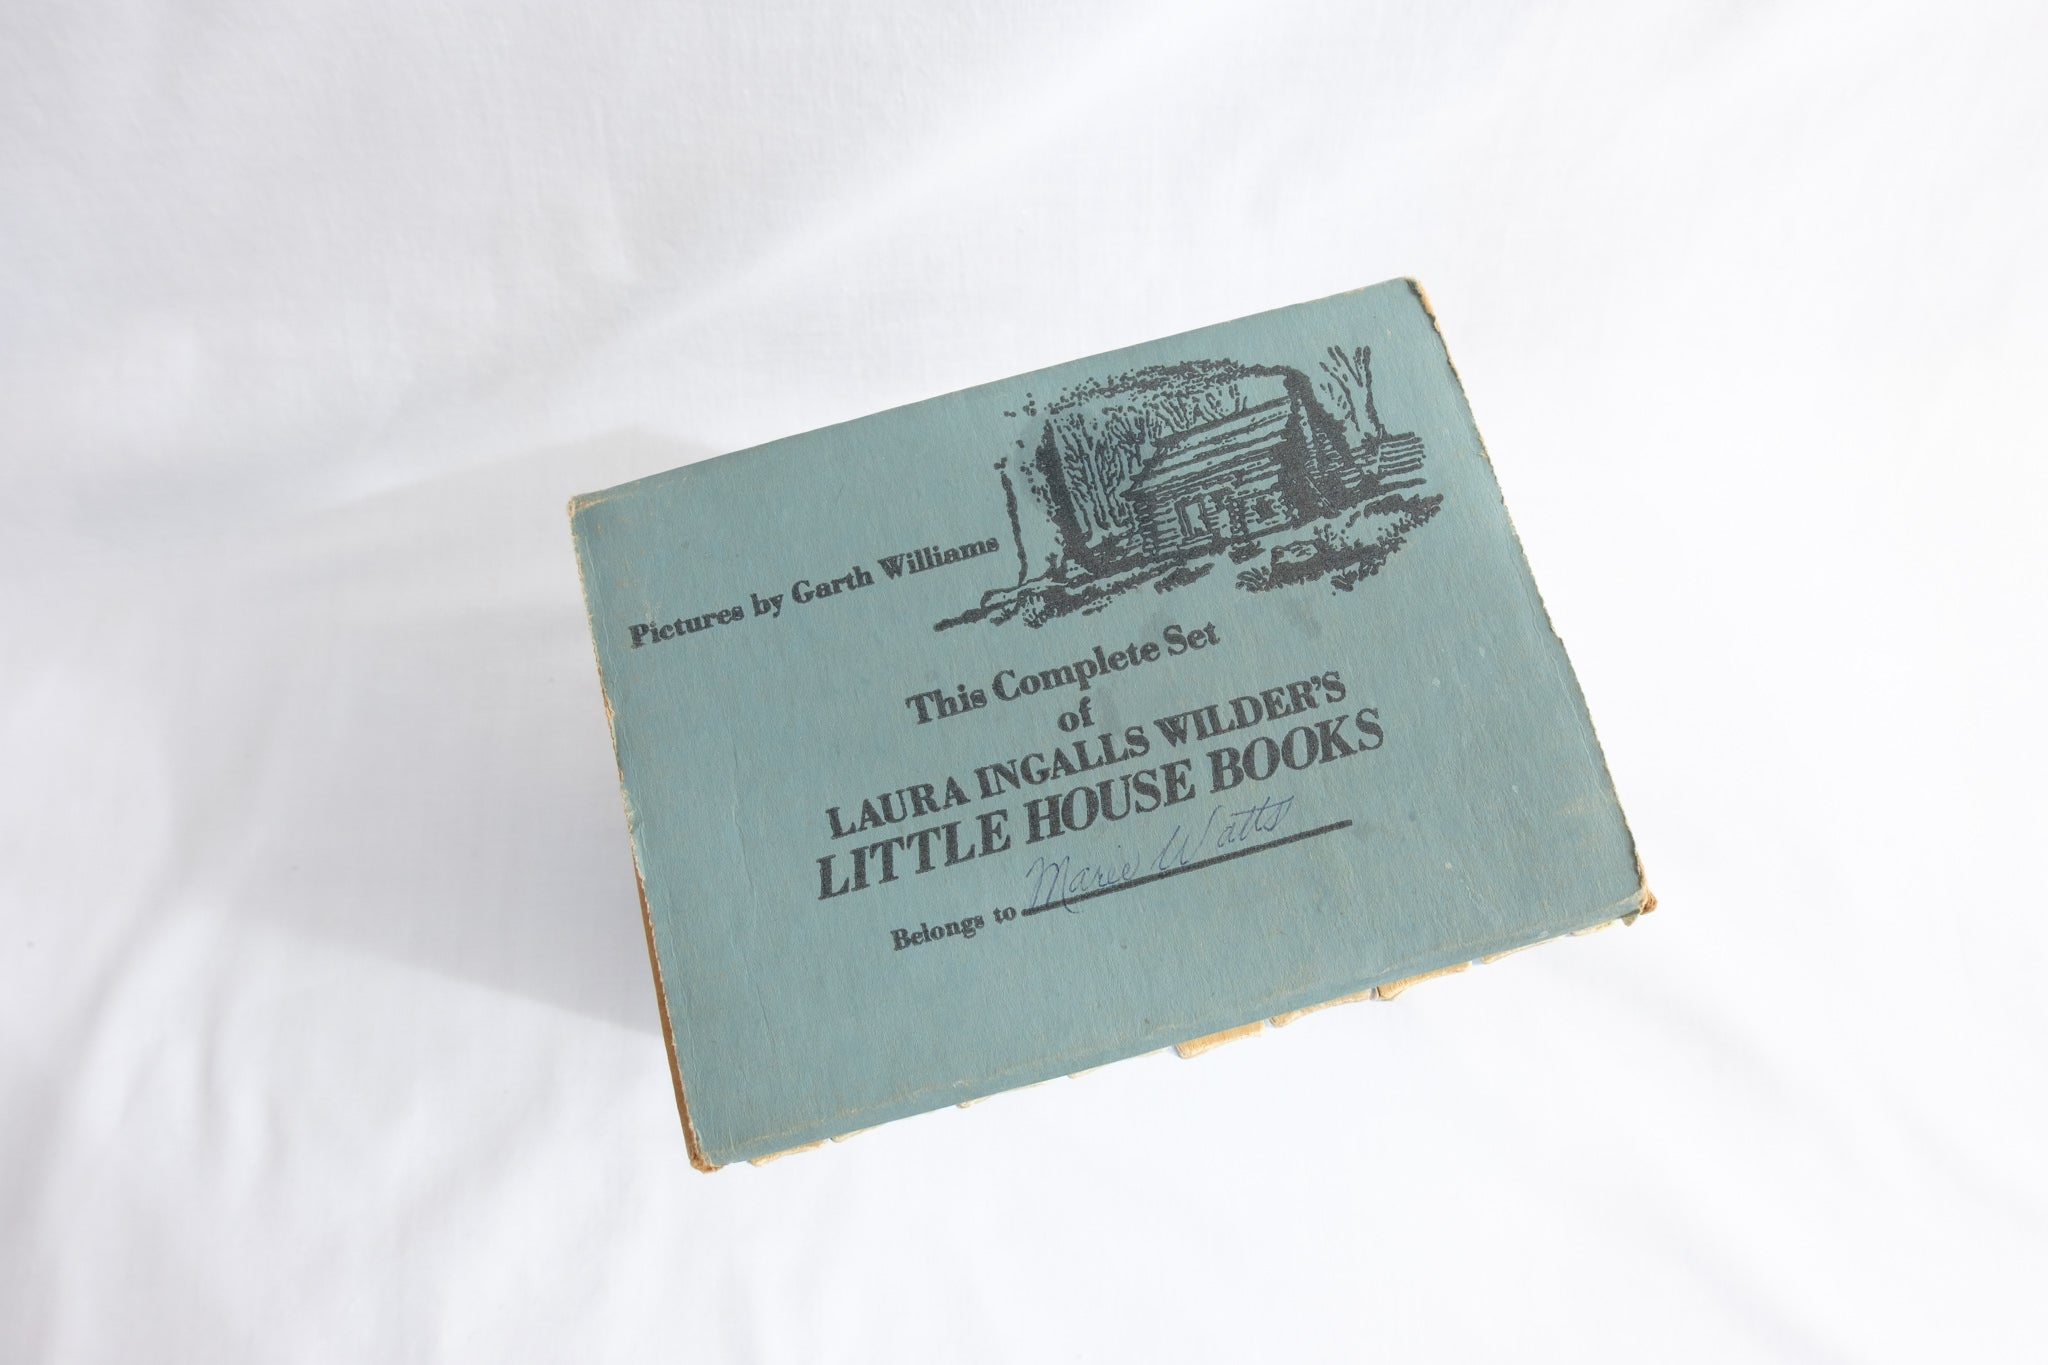 Little House on the Prairie Complete Set